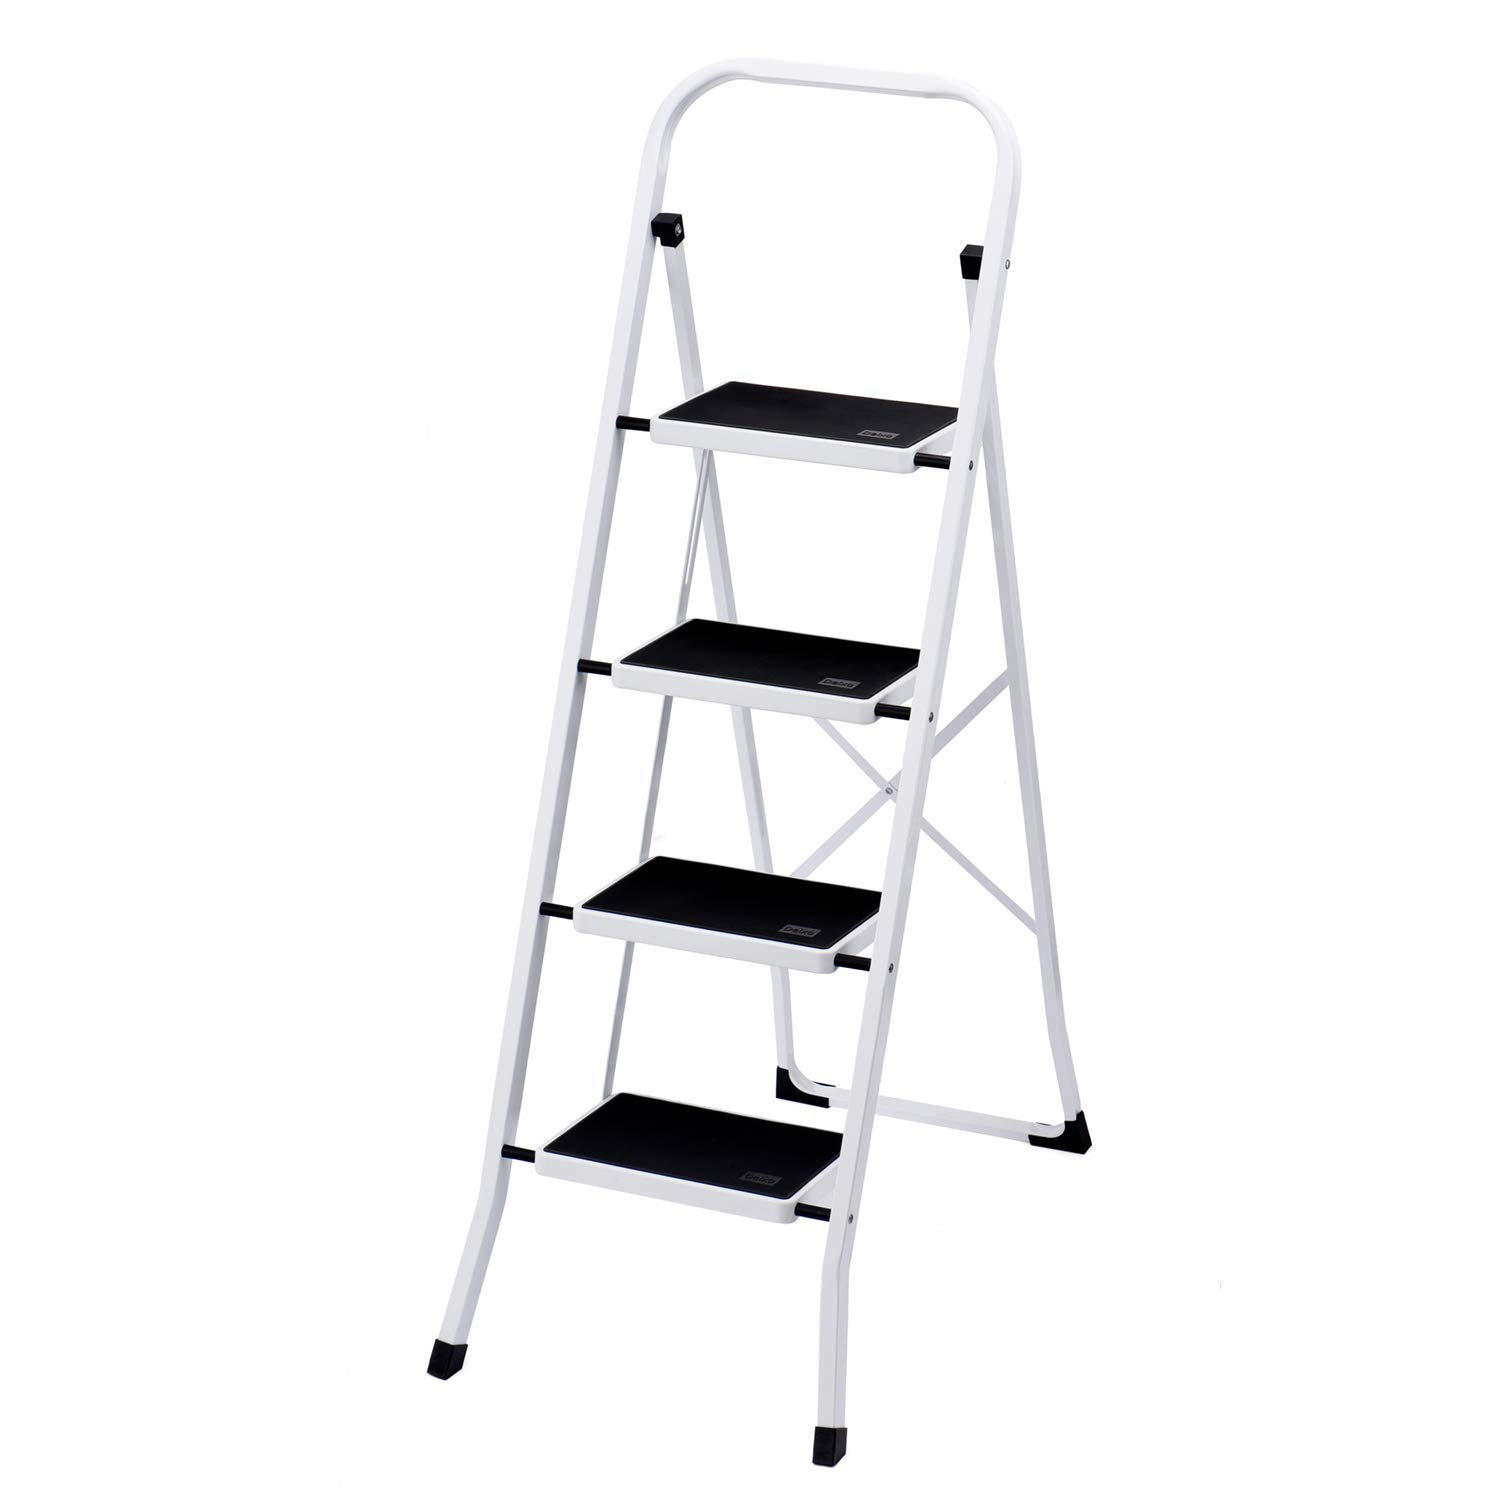 Delxo Folding 4 Step Ladder Ladder with Convenient Handgrip Anti-Slip Sturdy and Wide Pedal 330lbs Portable Steel Step Stool White and Black 4-Feet